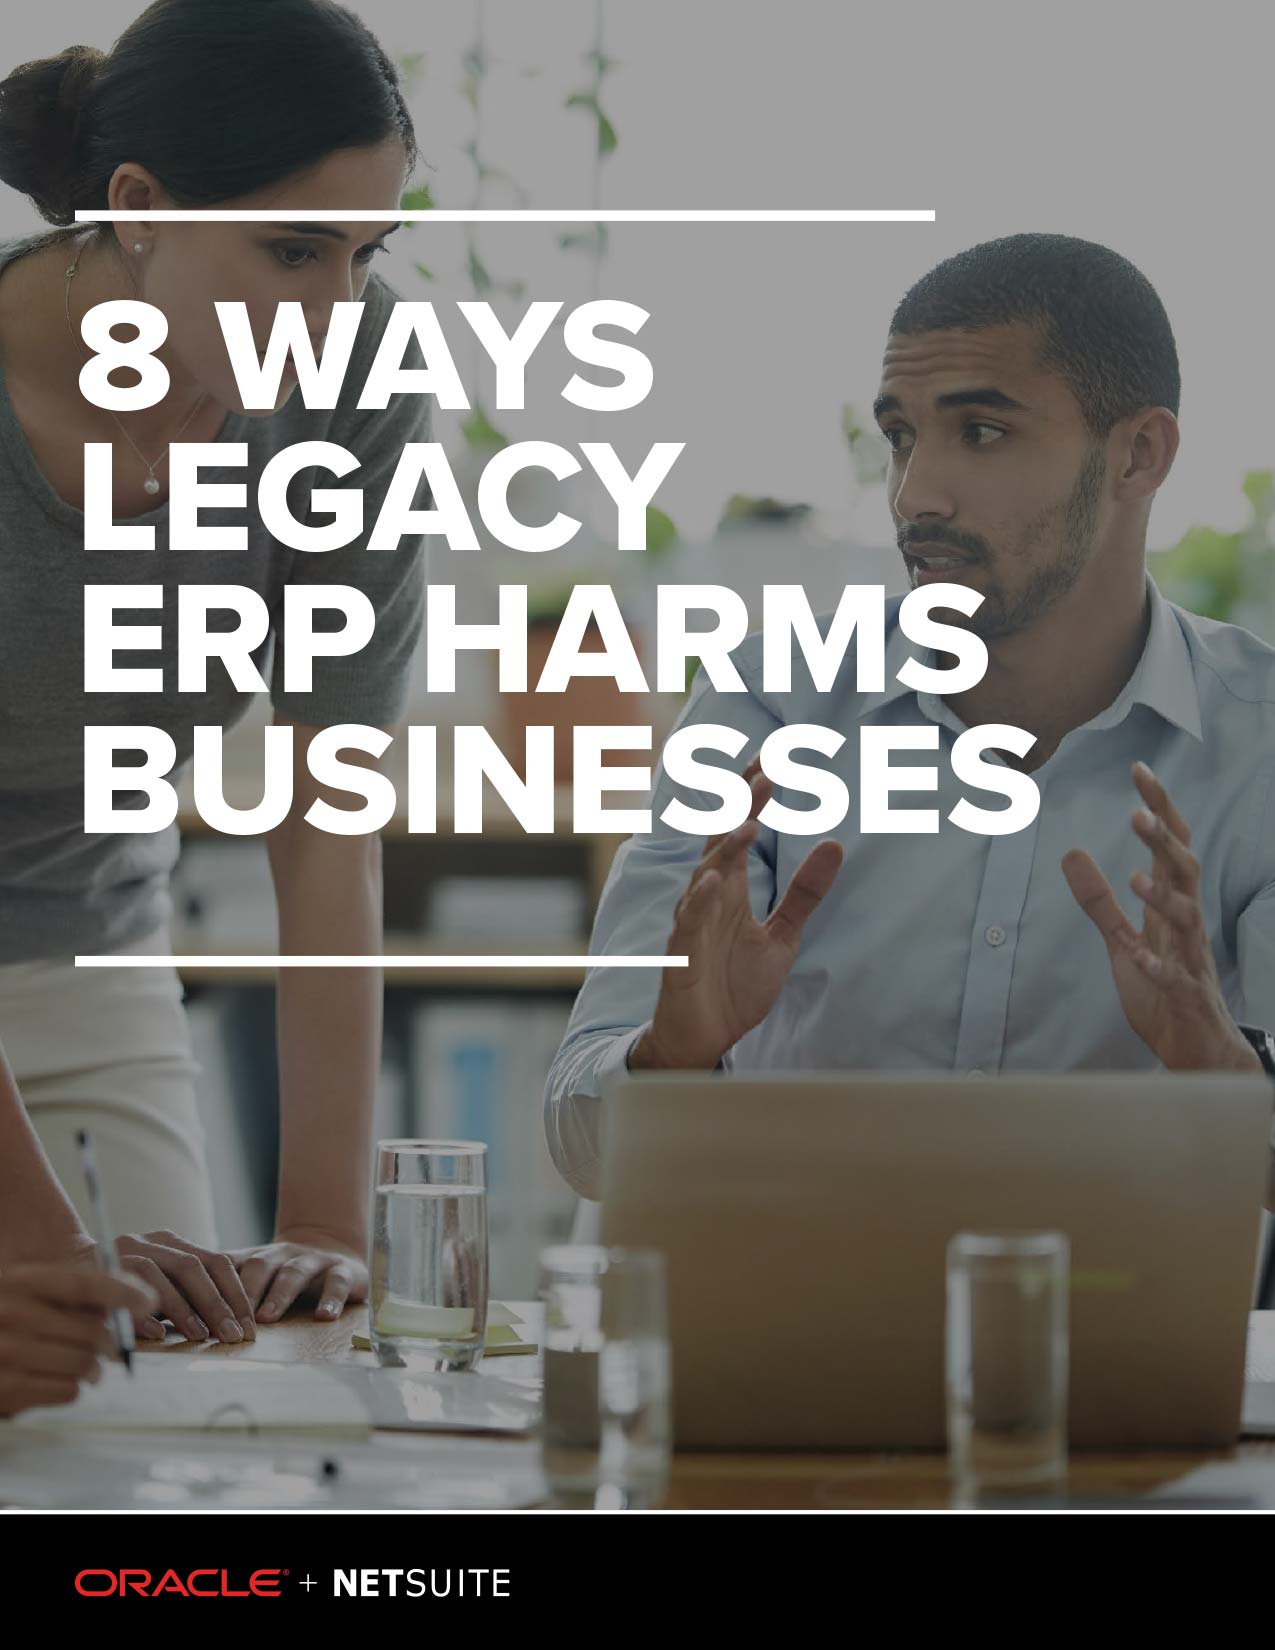 8 Ways Outdated, Legacy ERP Harms Your Business